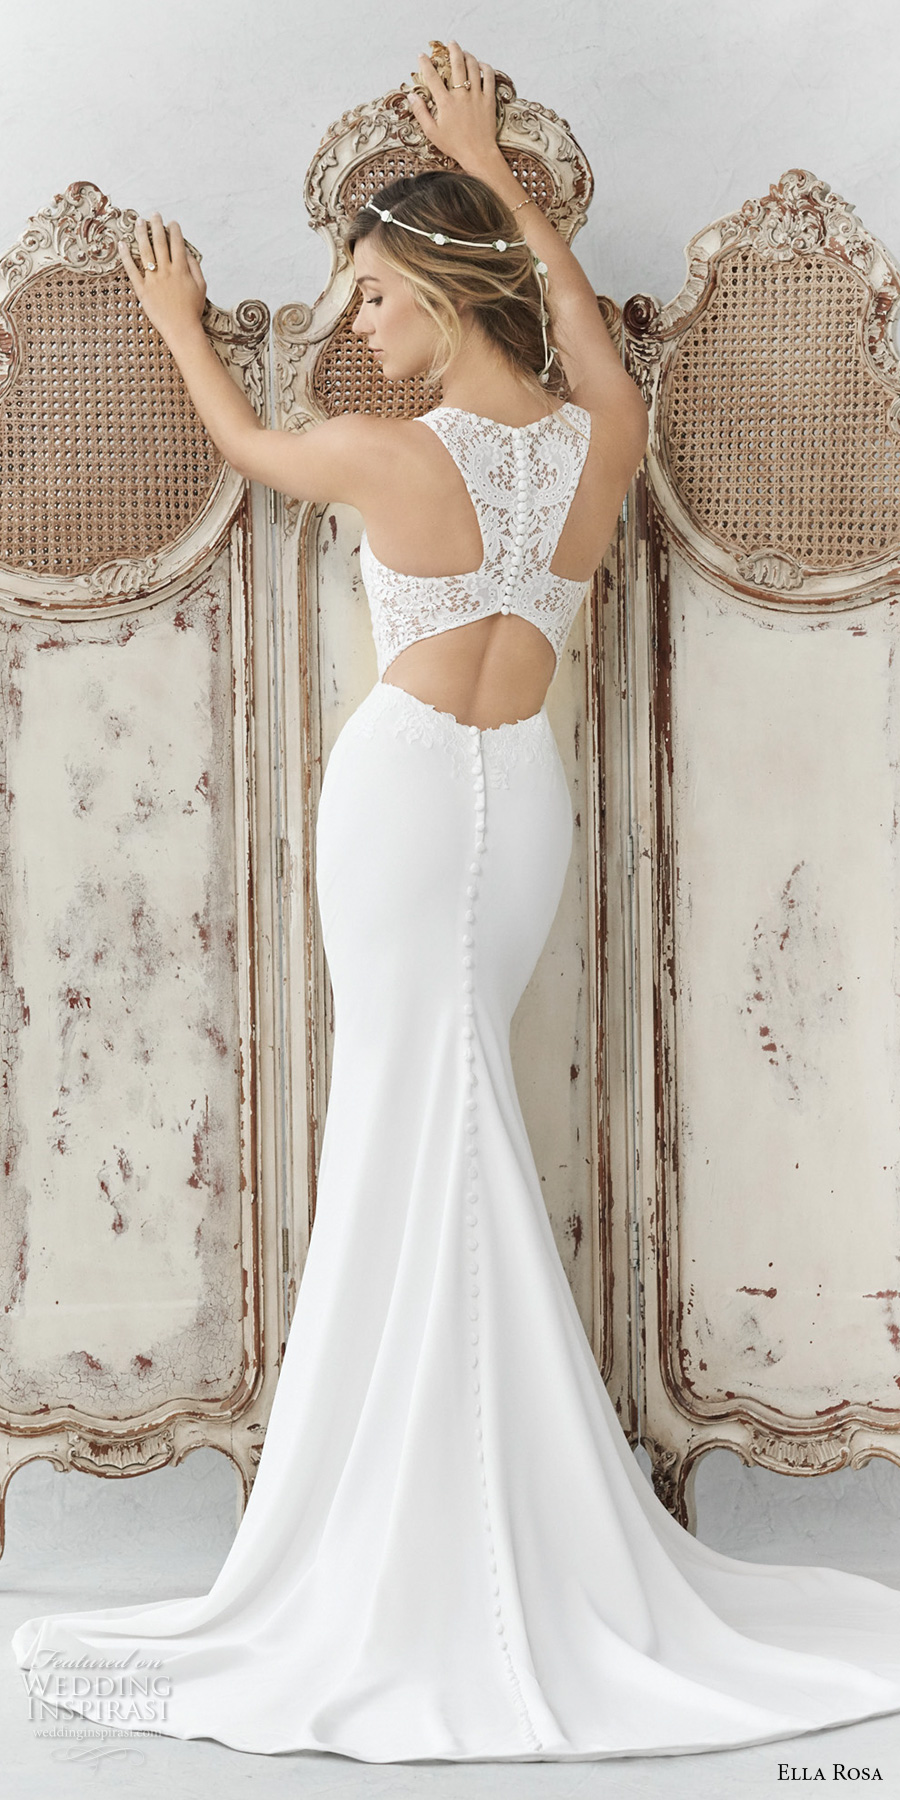 ella rosa spring 2017 bridal sleeveless with strap scoop neck heavily embellished bodice elegant sheath wedding dress rasor back sweep train (360) bv